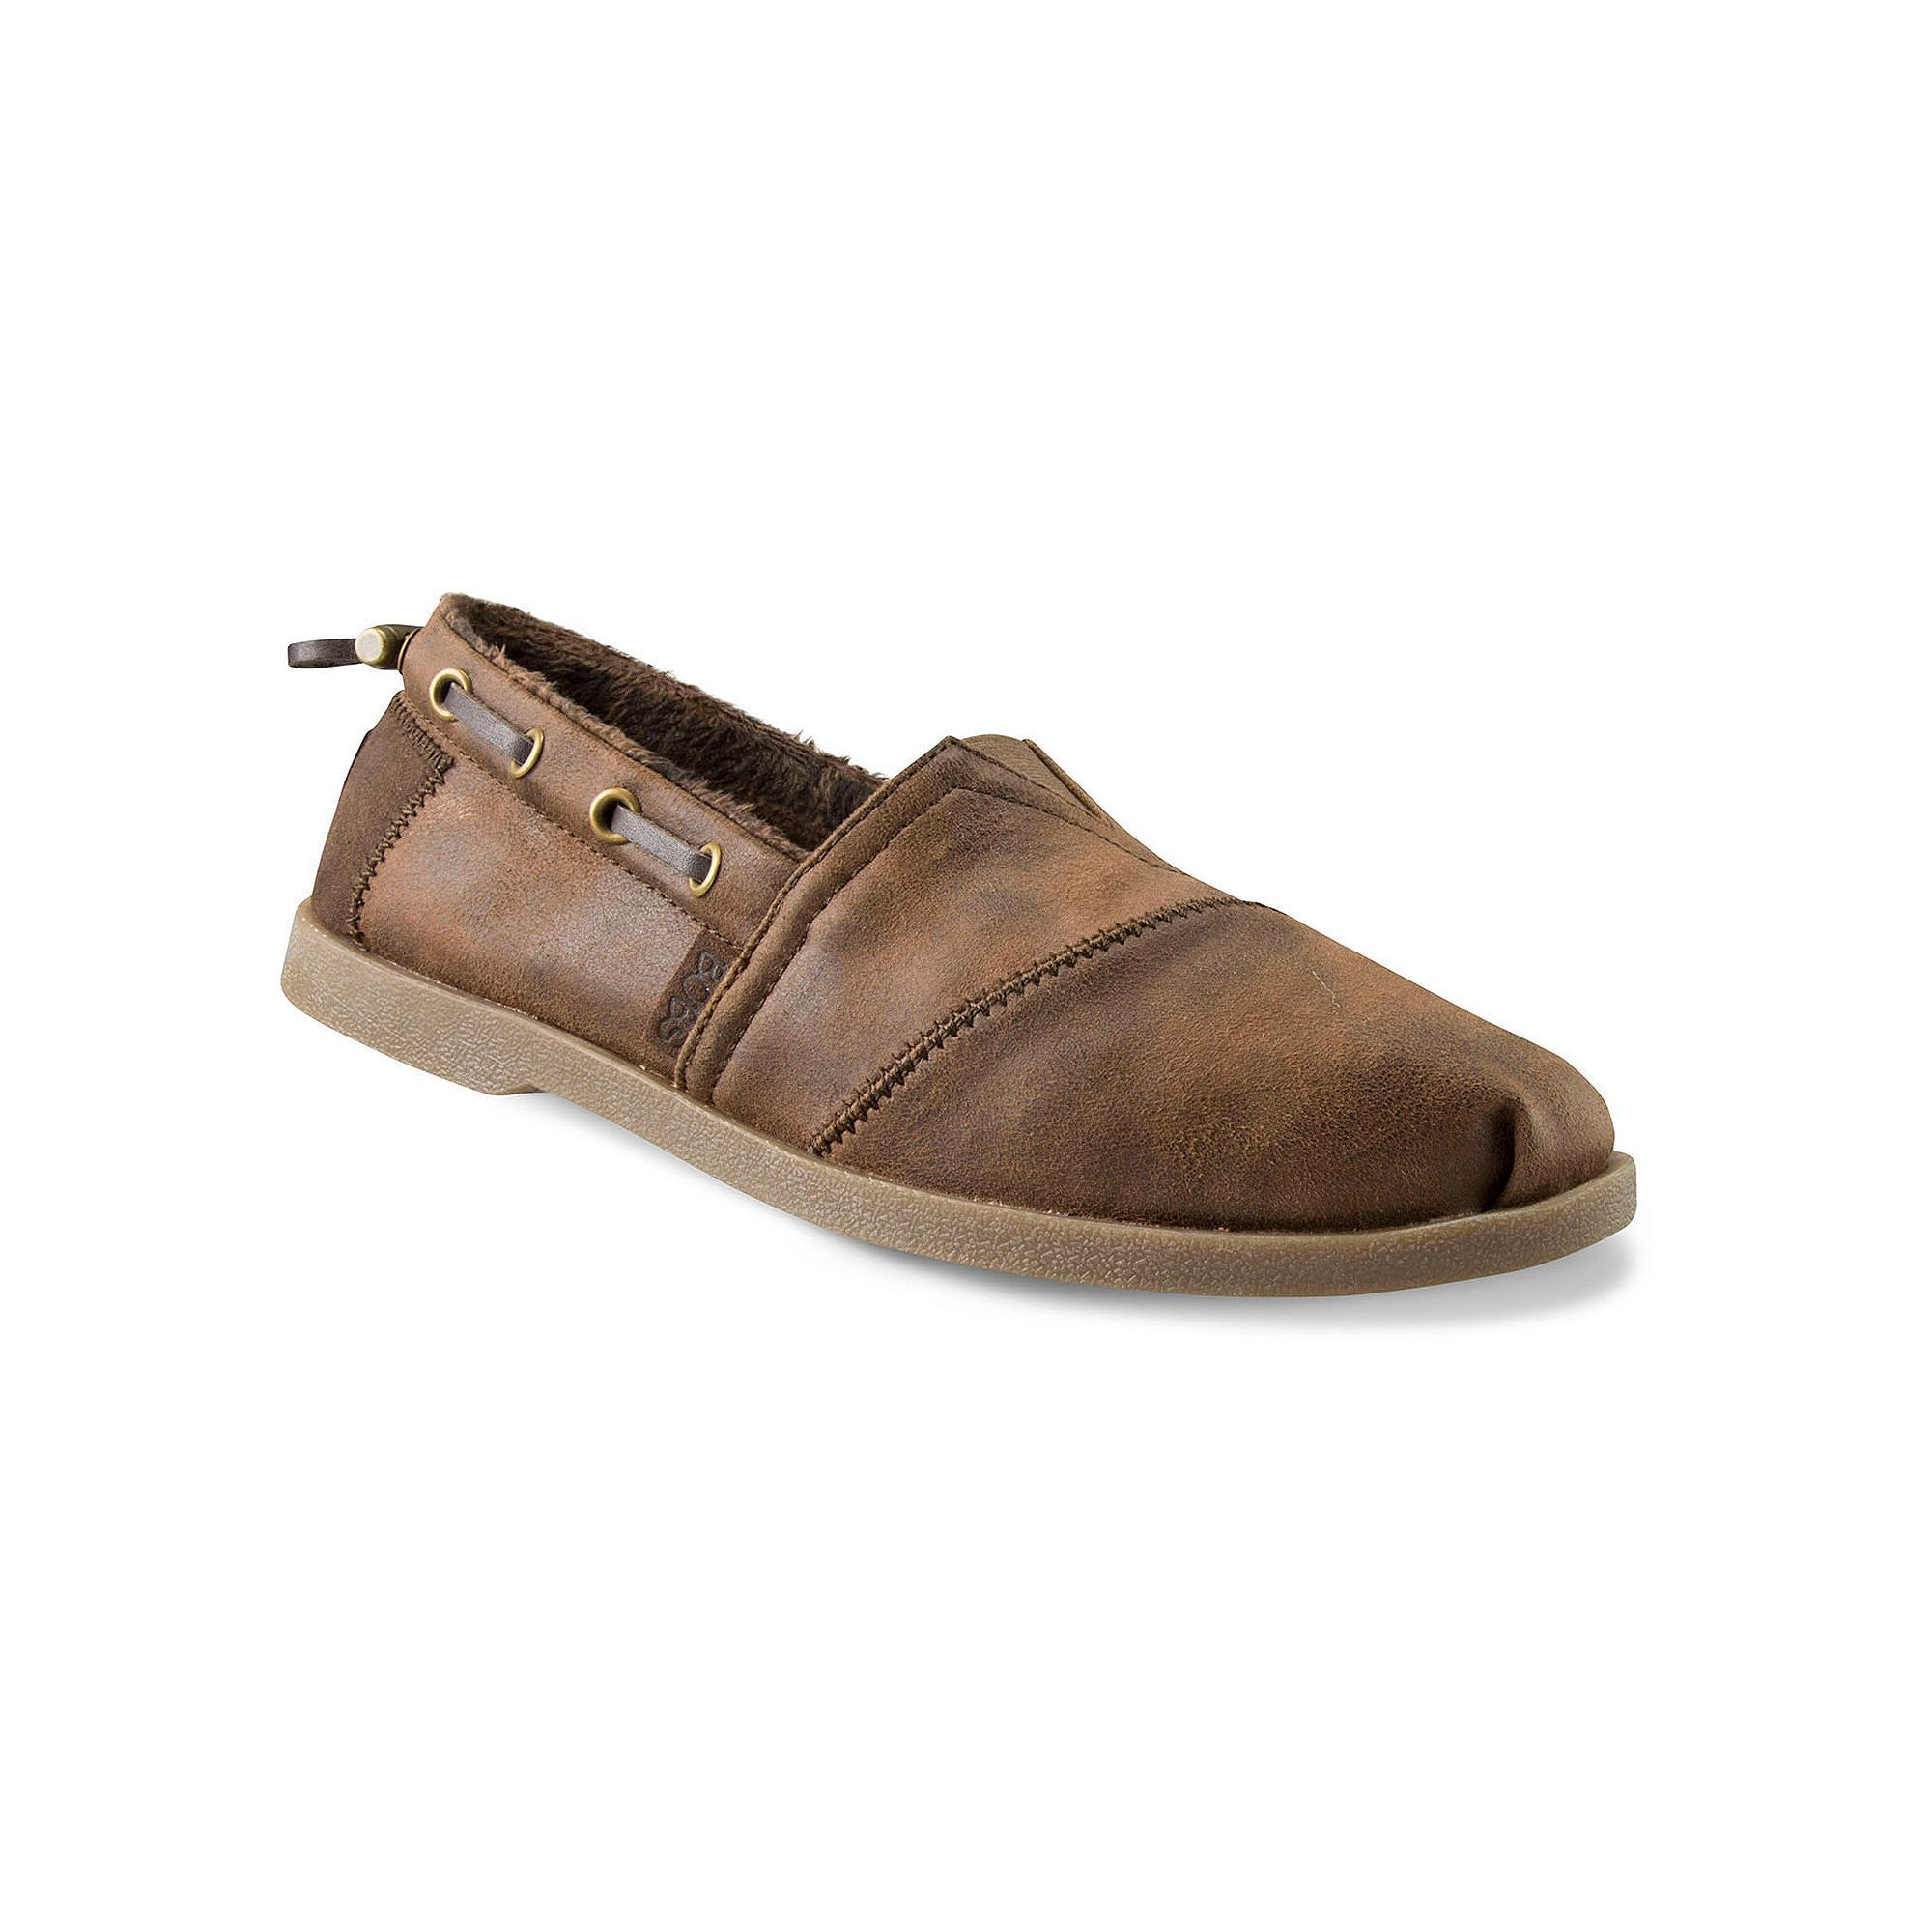 Skechers BOBS Chill Luxe Buttoned Up Women's Slip On Flats